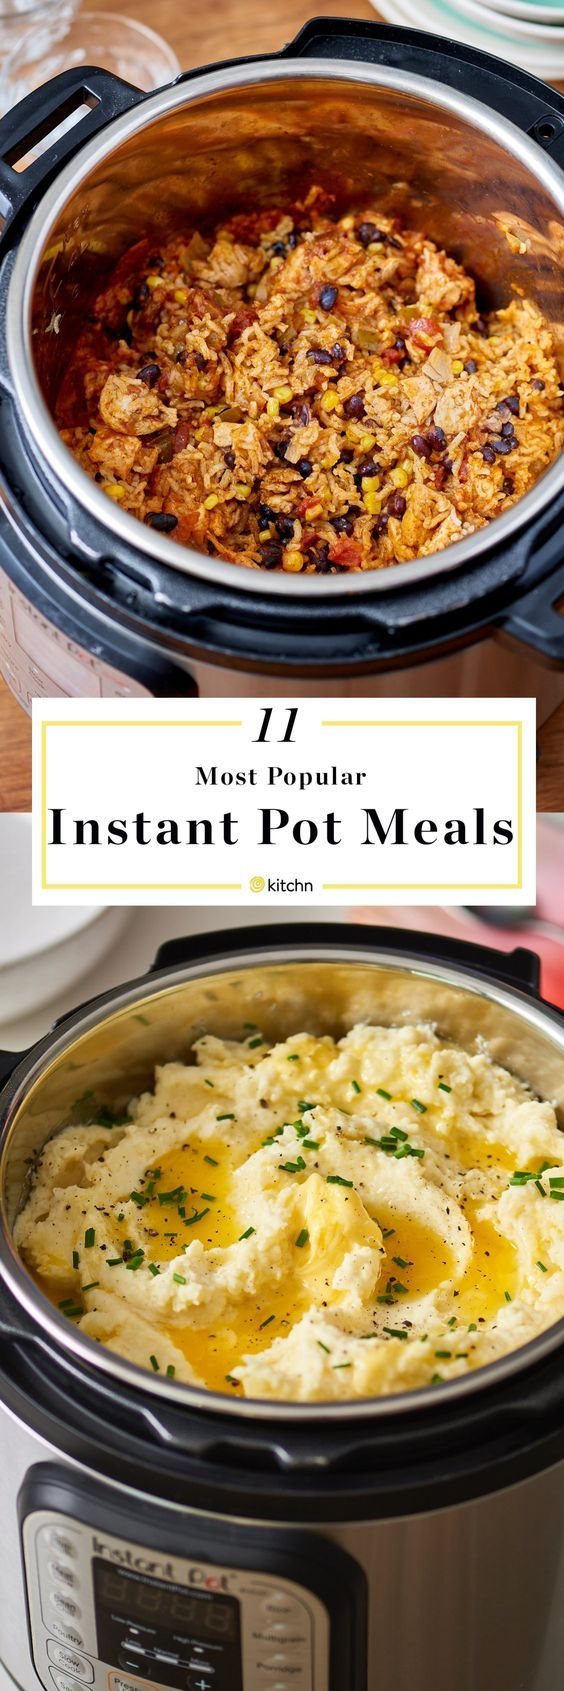 11 Most Popular Easy Instant Pot Pressure Cooker and Slow Cooker Meals, Dinners, and Recipes of 2017. Pressure cooking is a healthy fast way to get dinner on the table for your family! Easy recipes for everything from chicken burrito bowls to mashed potatoes. Great for holidays and weeknight meals.